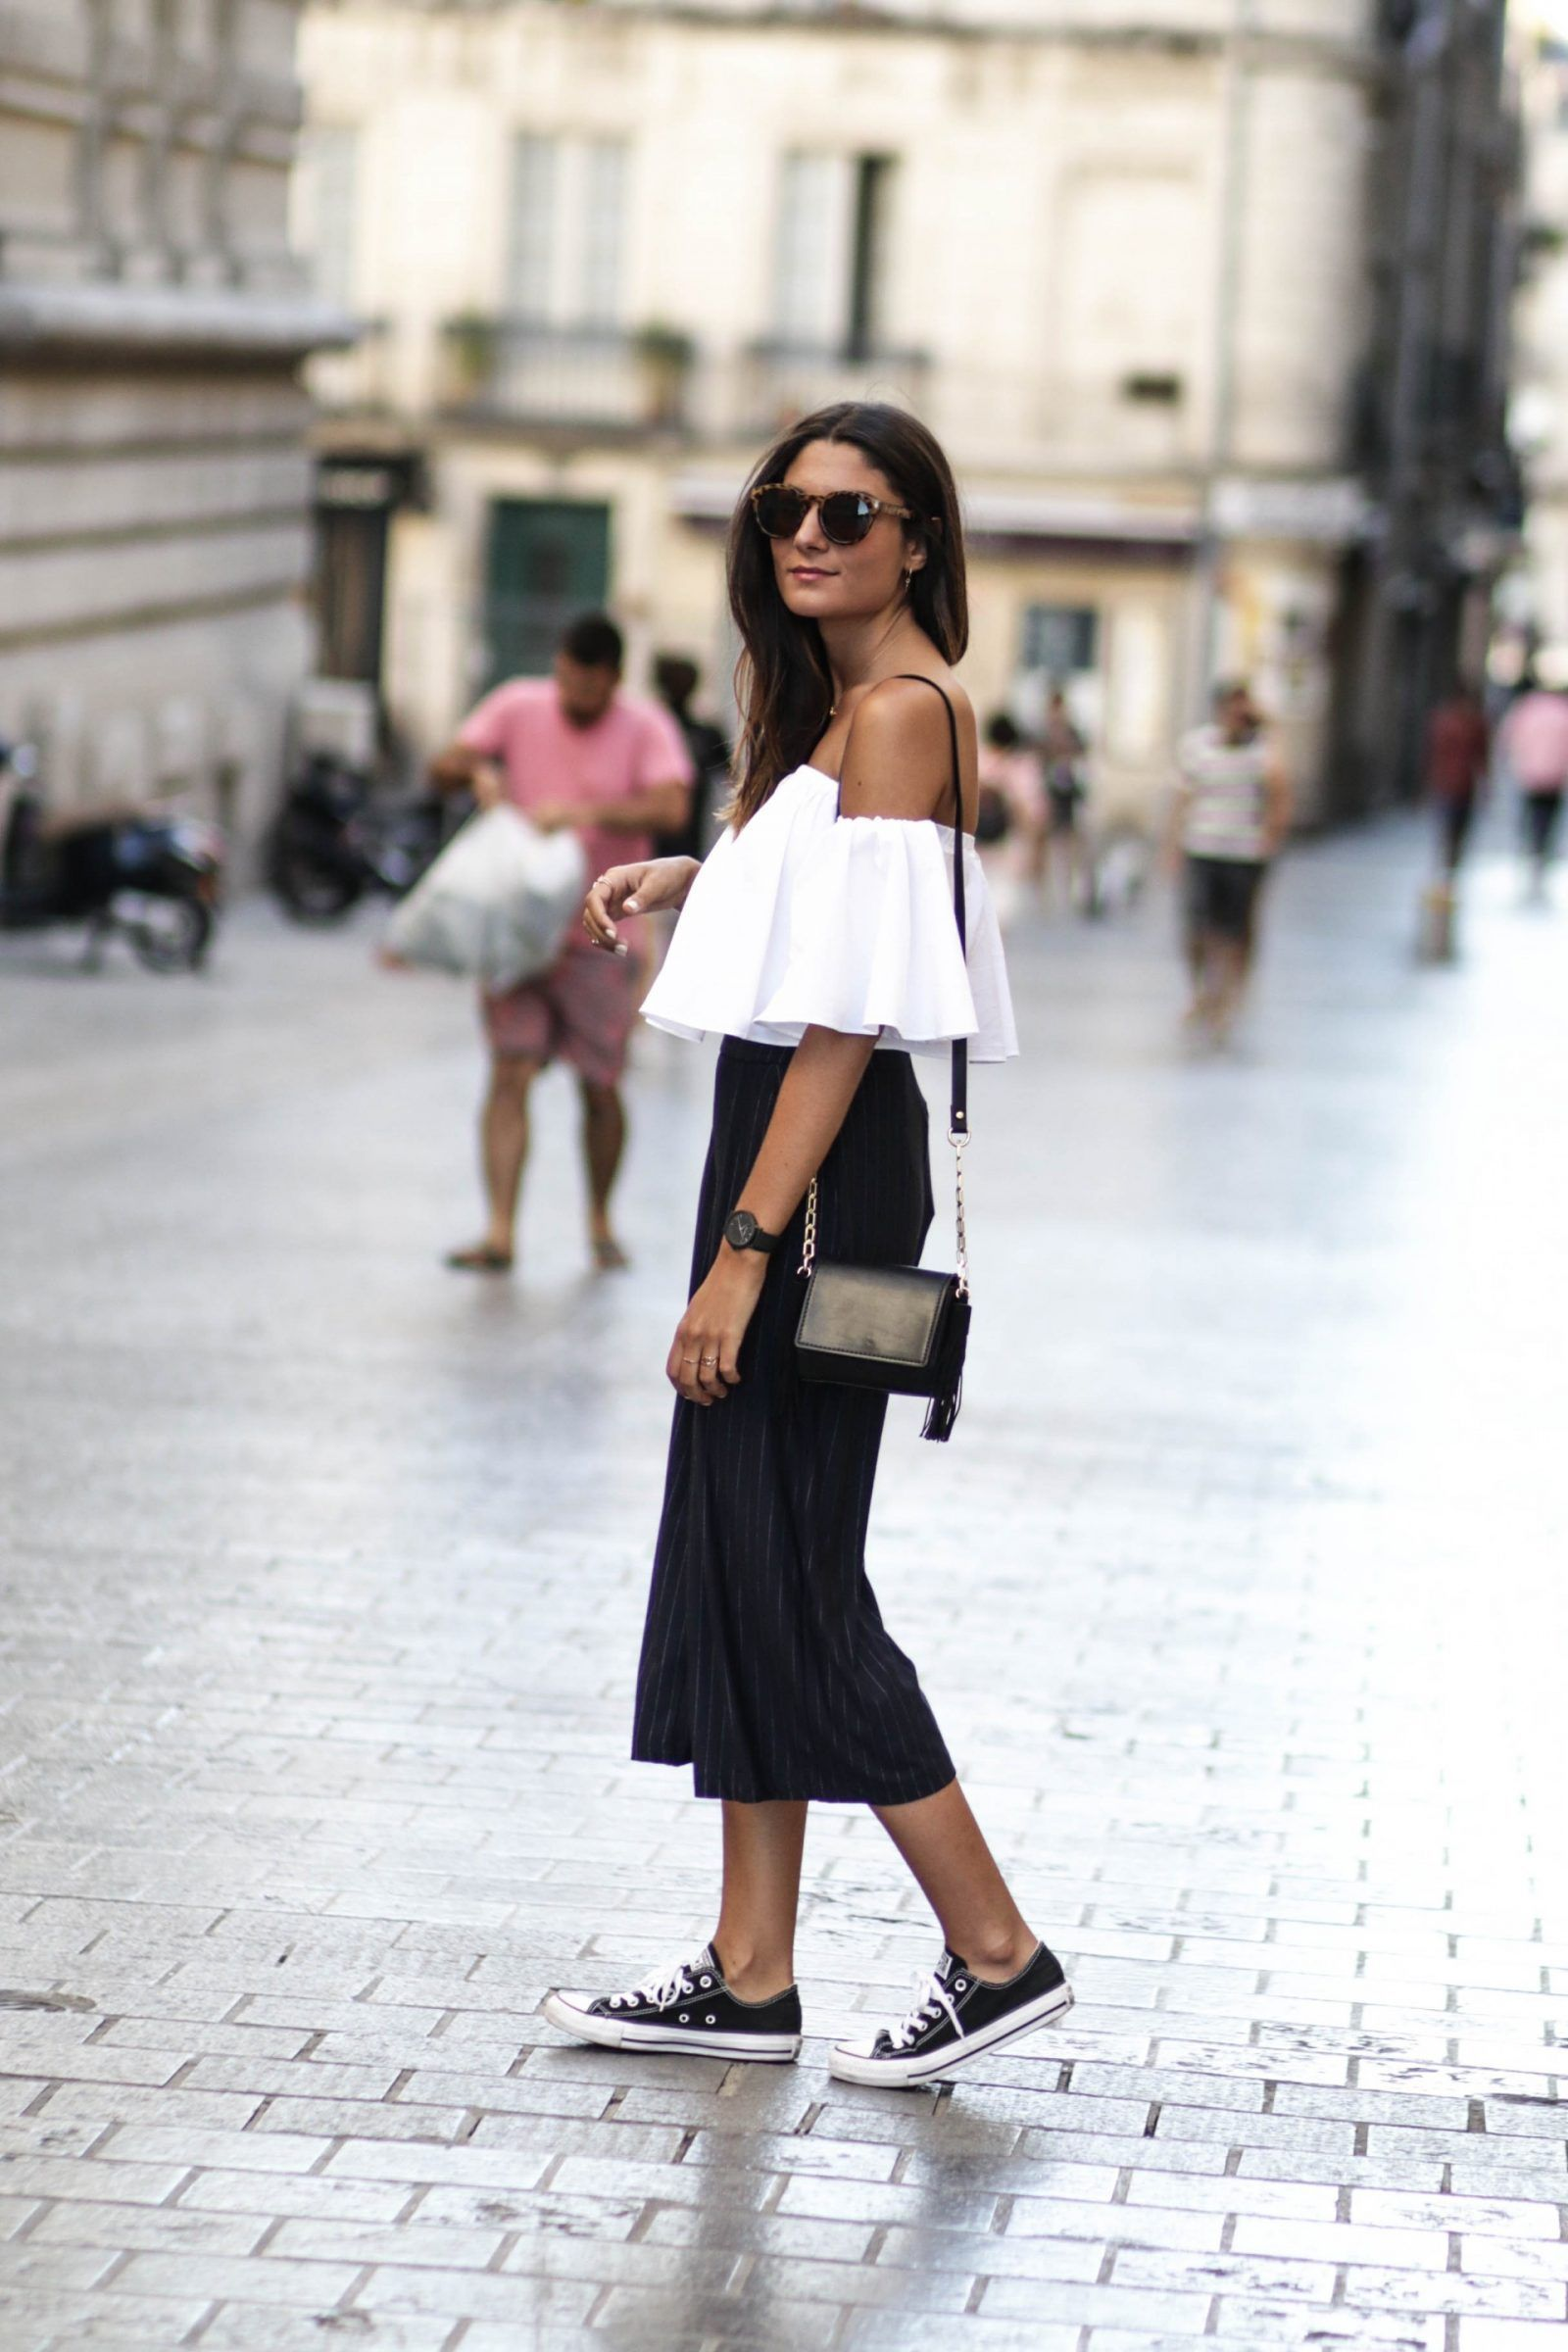 Classic black converse are the ideal match to an outfit consisting of  culottes and an off the shoulder top 6785a3a19